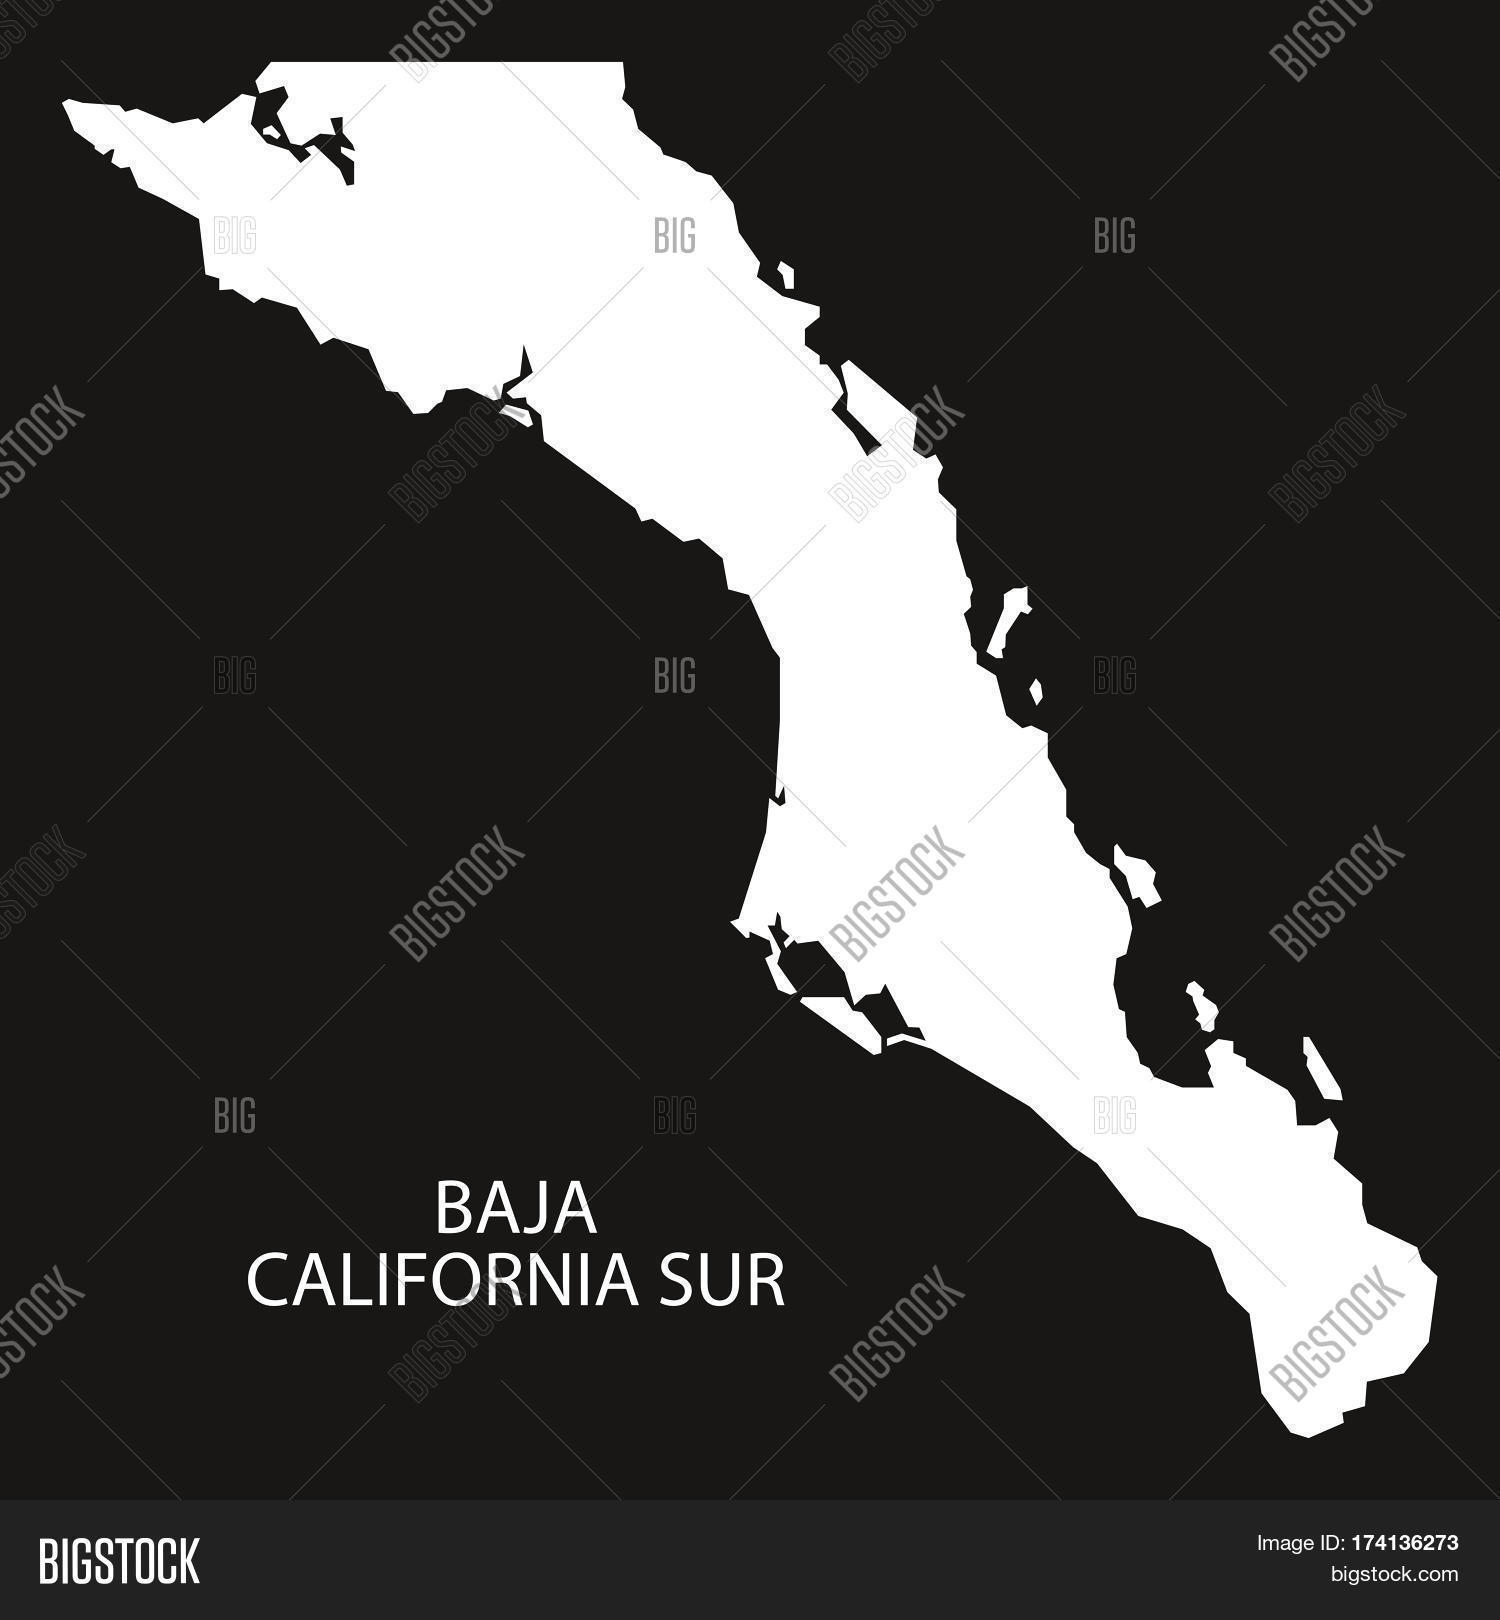 Baja california sur image photo free trial bigstock baja california sur mexico map black inverted silhouette publicscrutiny Choice Image